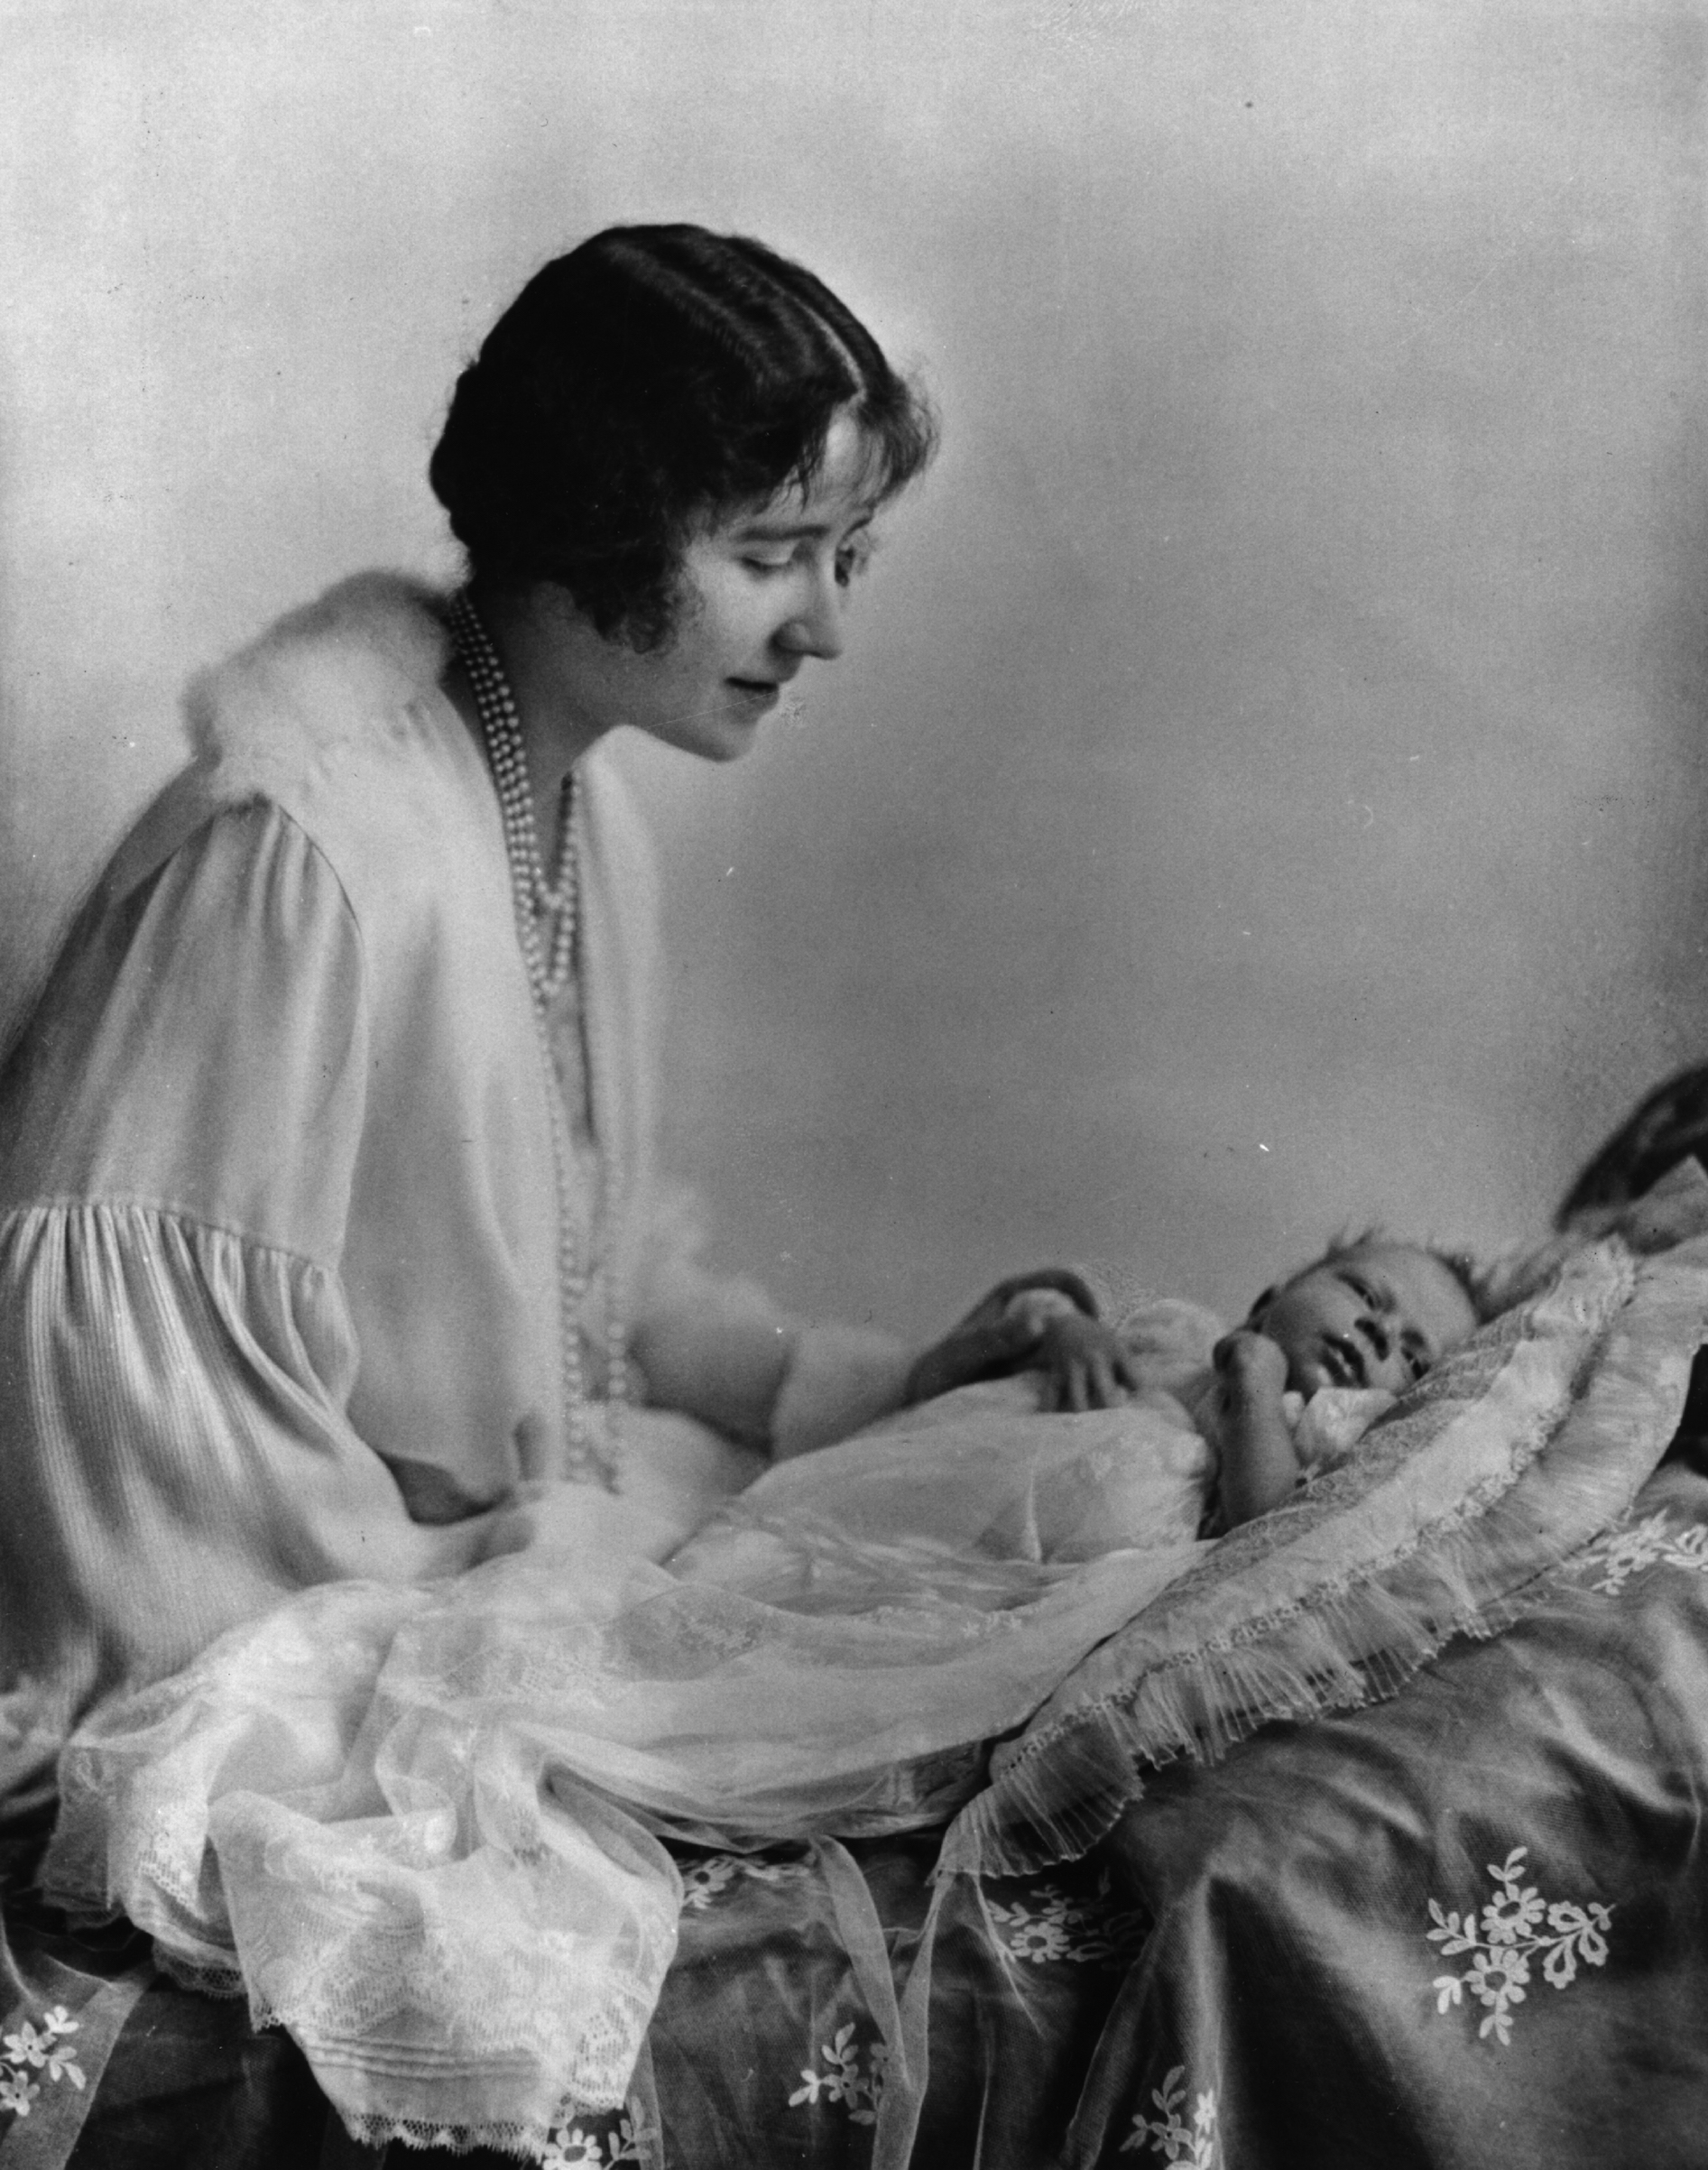 May 1926: Elizabeth, Duchess of York (1900 - 2002), looking at her first child, future Queen, Princess Elizabeth.